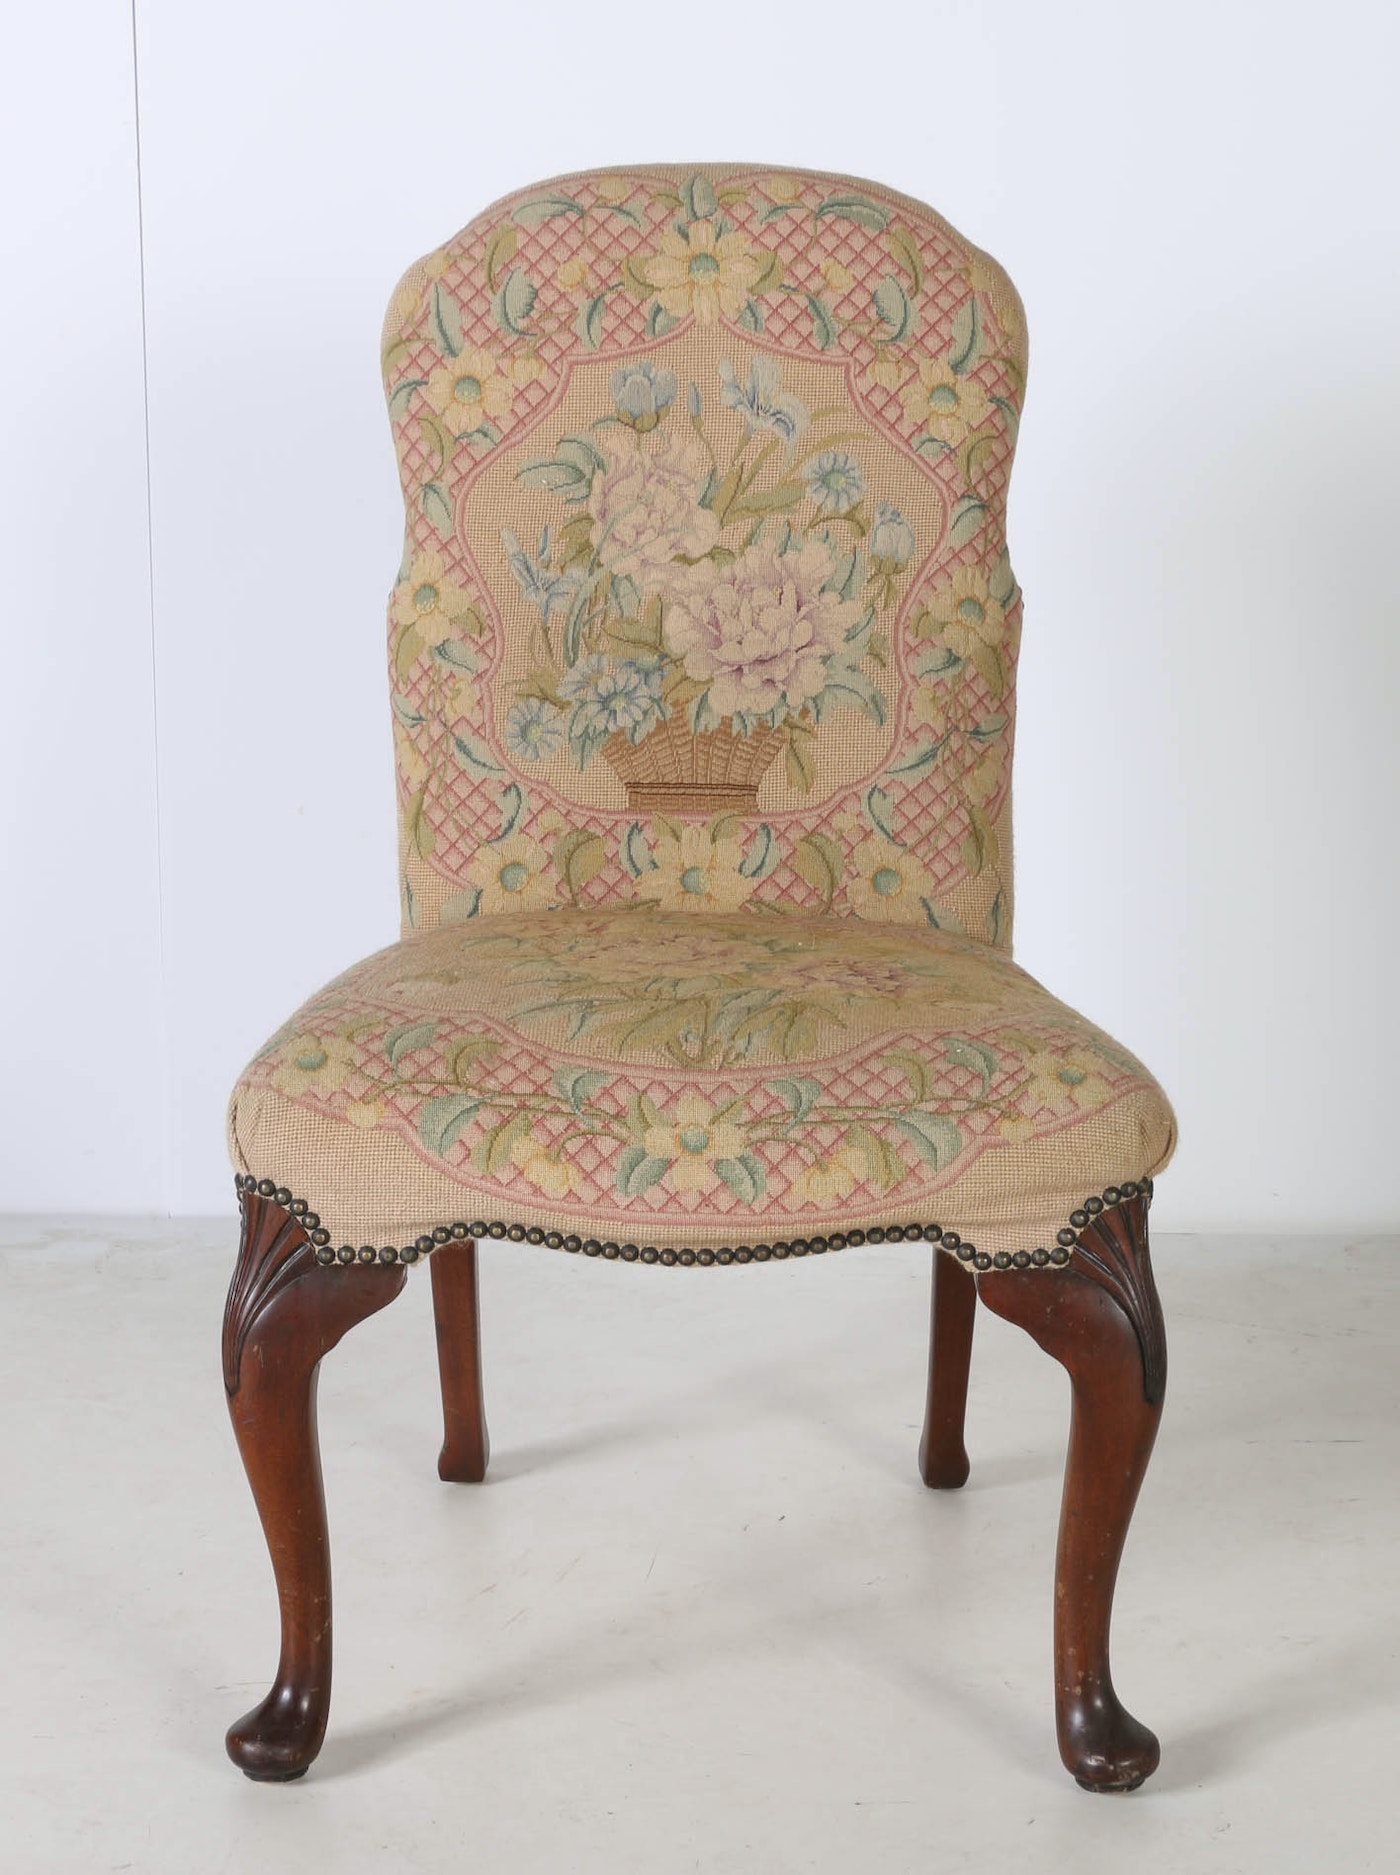 Queen anne style upholstered chairs by maitland smith ltd for Styles of upholstered chairs